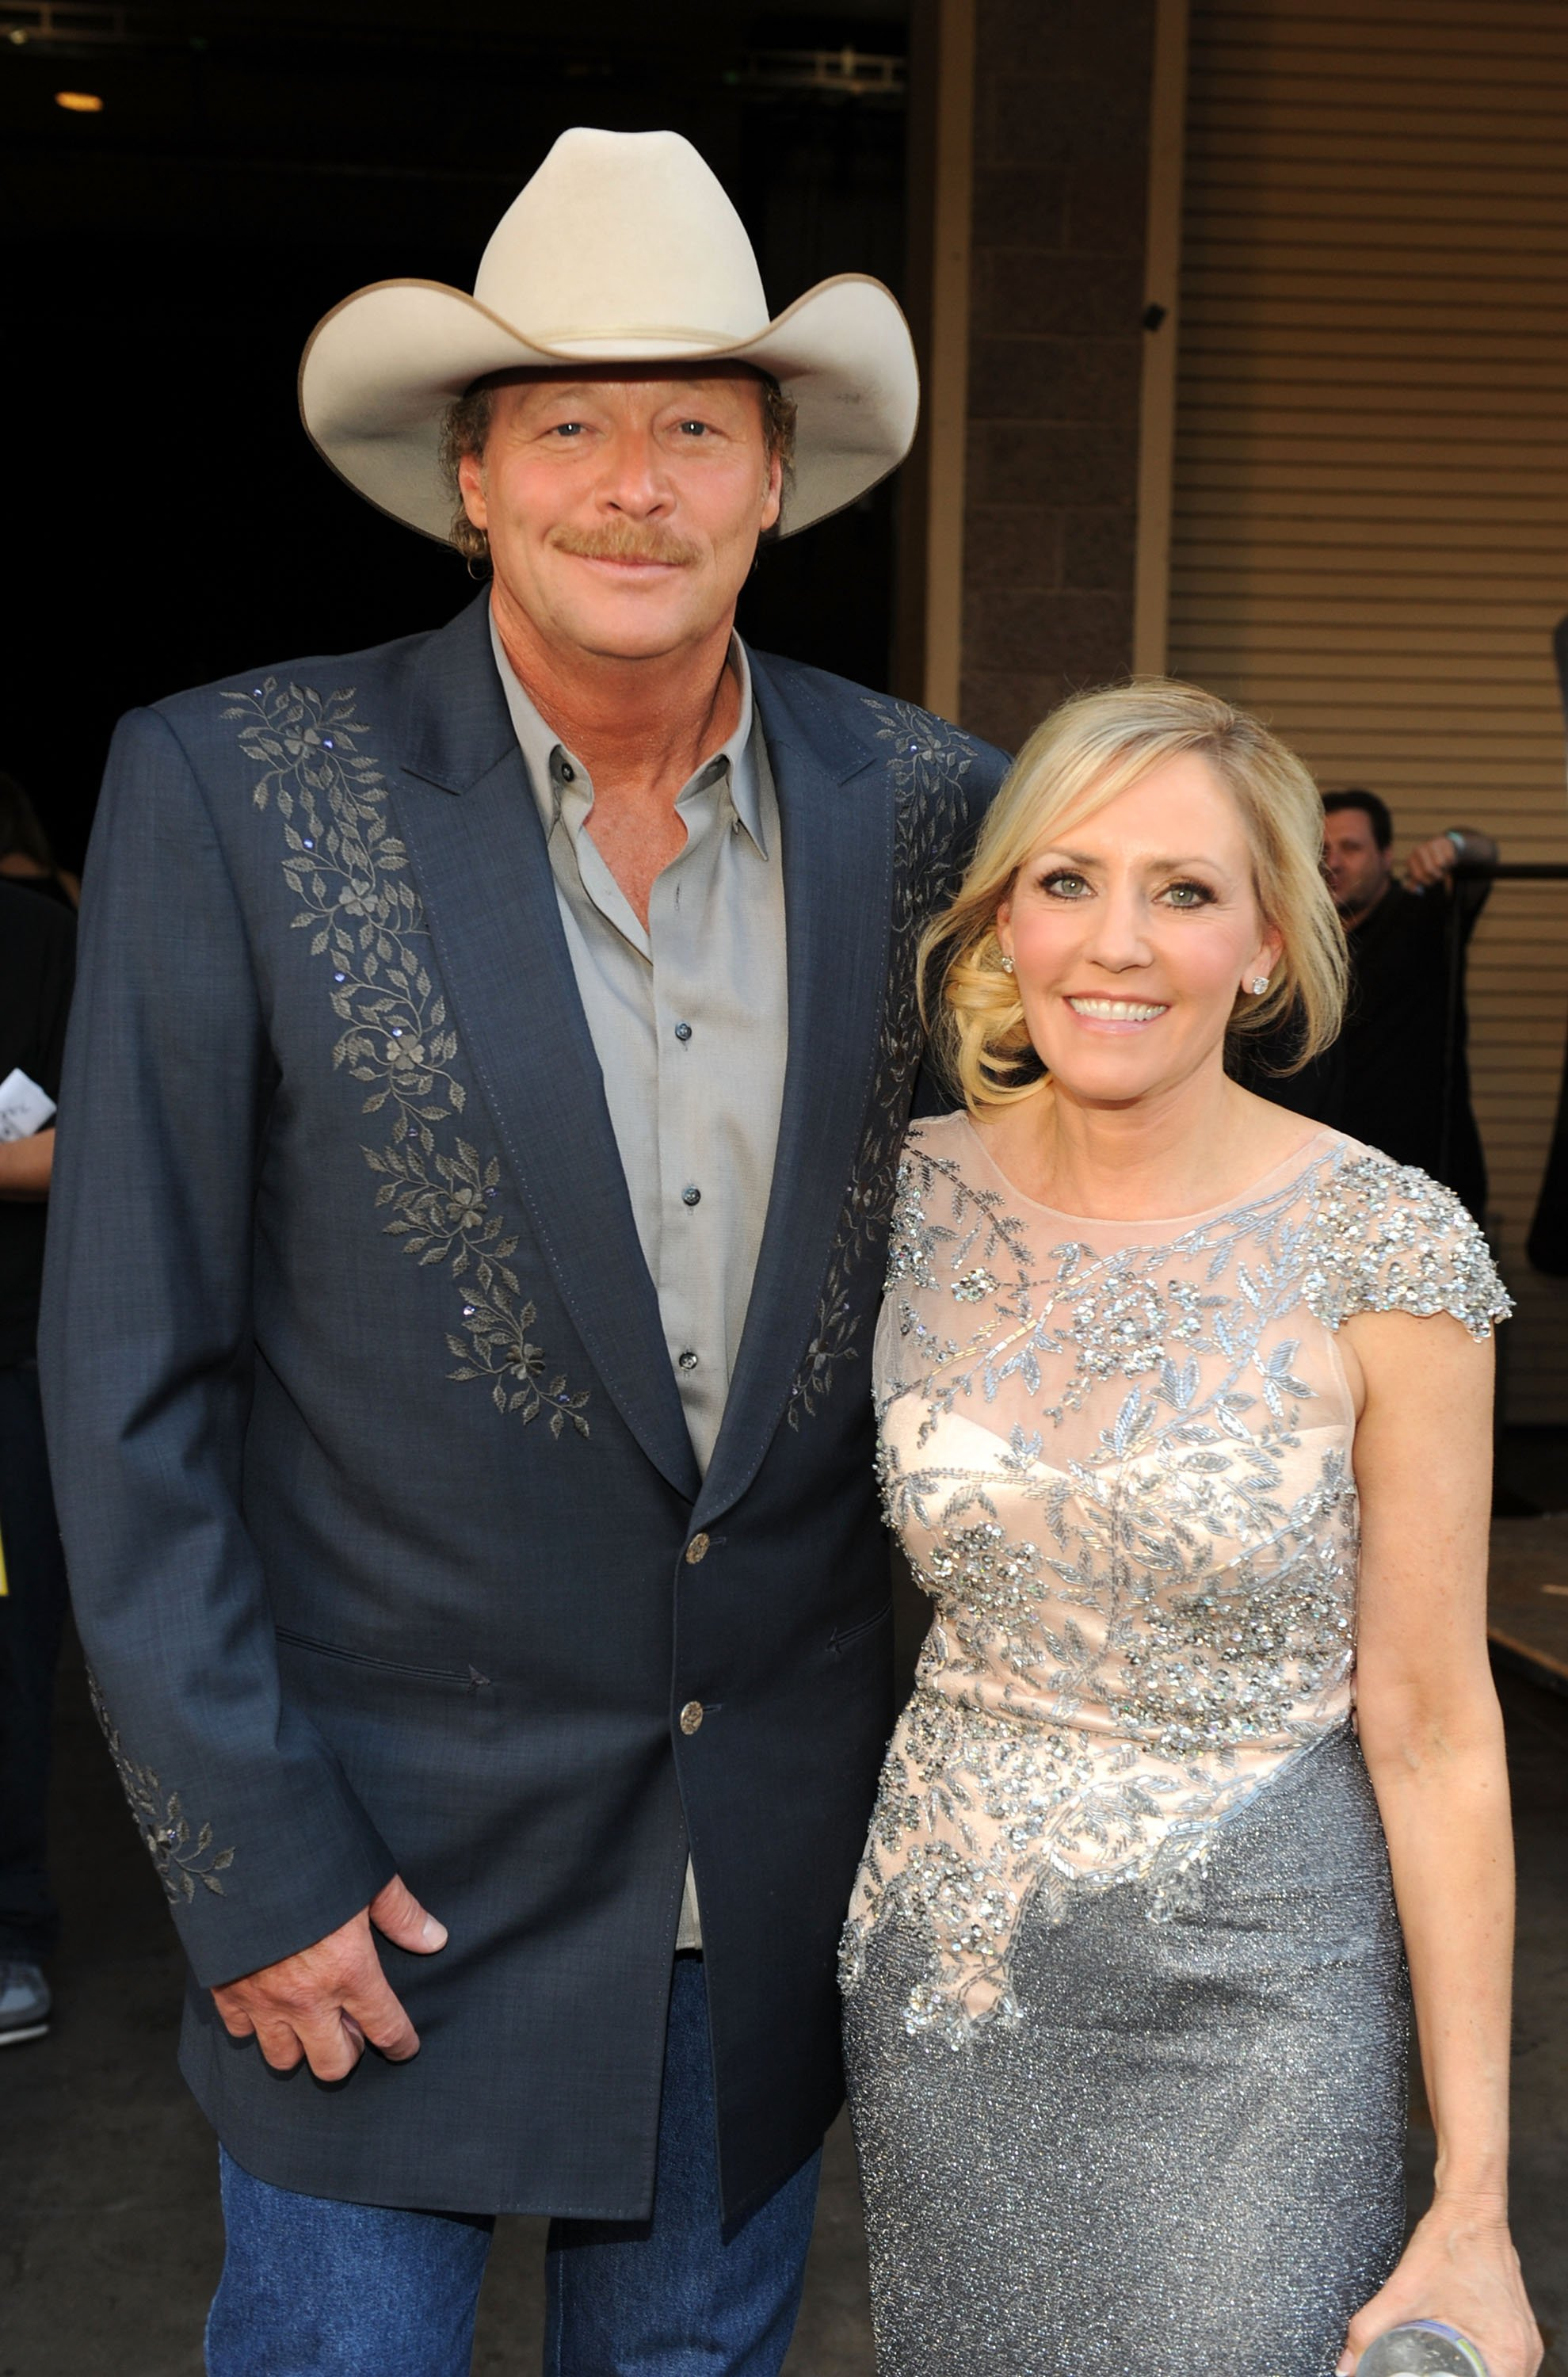 Alan Jackson and Denise Jackson attend the 46th Annual Academy Of Country Music Awards in Las Vegas, Nevada on April 3, 2011 | Photo: Getty Images